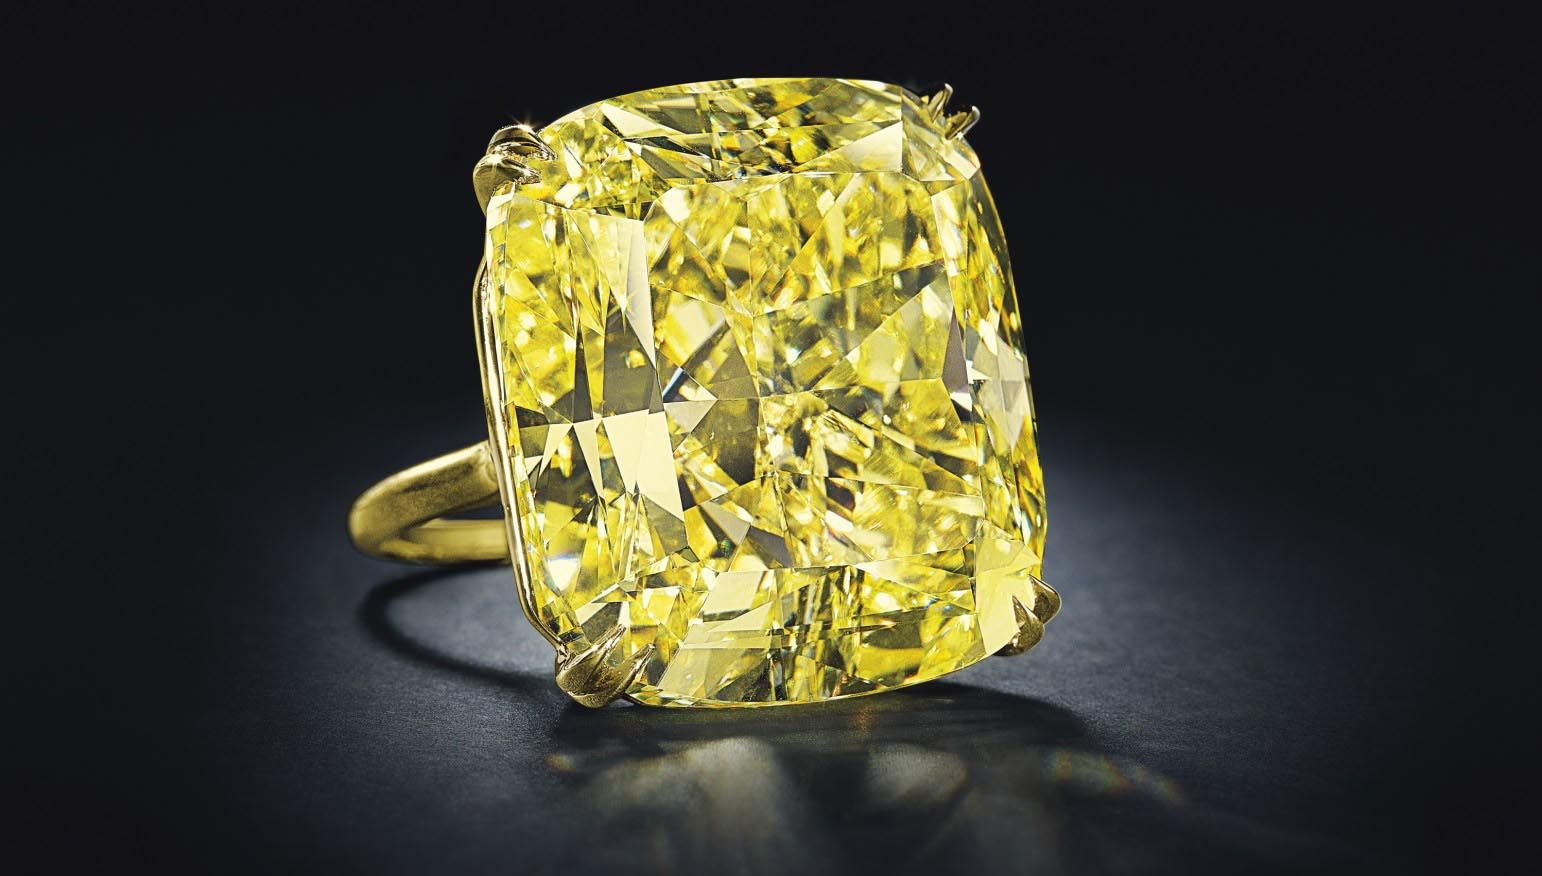 This auction is among the first to launch the much-anticipated fall season of Christie's worldwide jewelry auctions and features over 300 individual jewels.